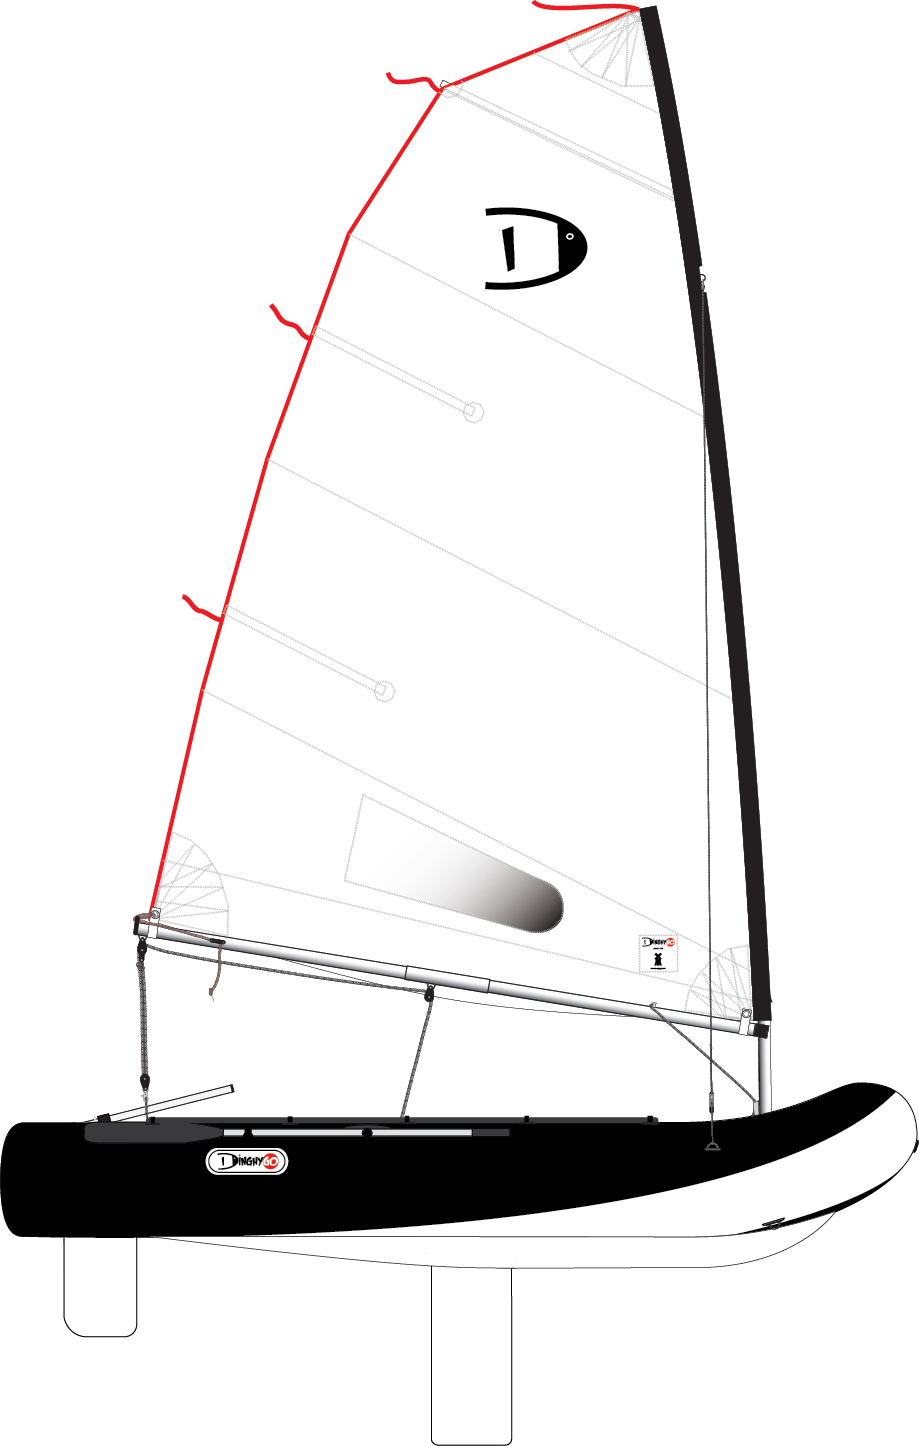 DinghyGo Orca 325 (levering april 2021)